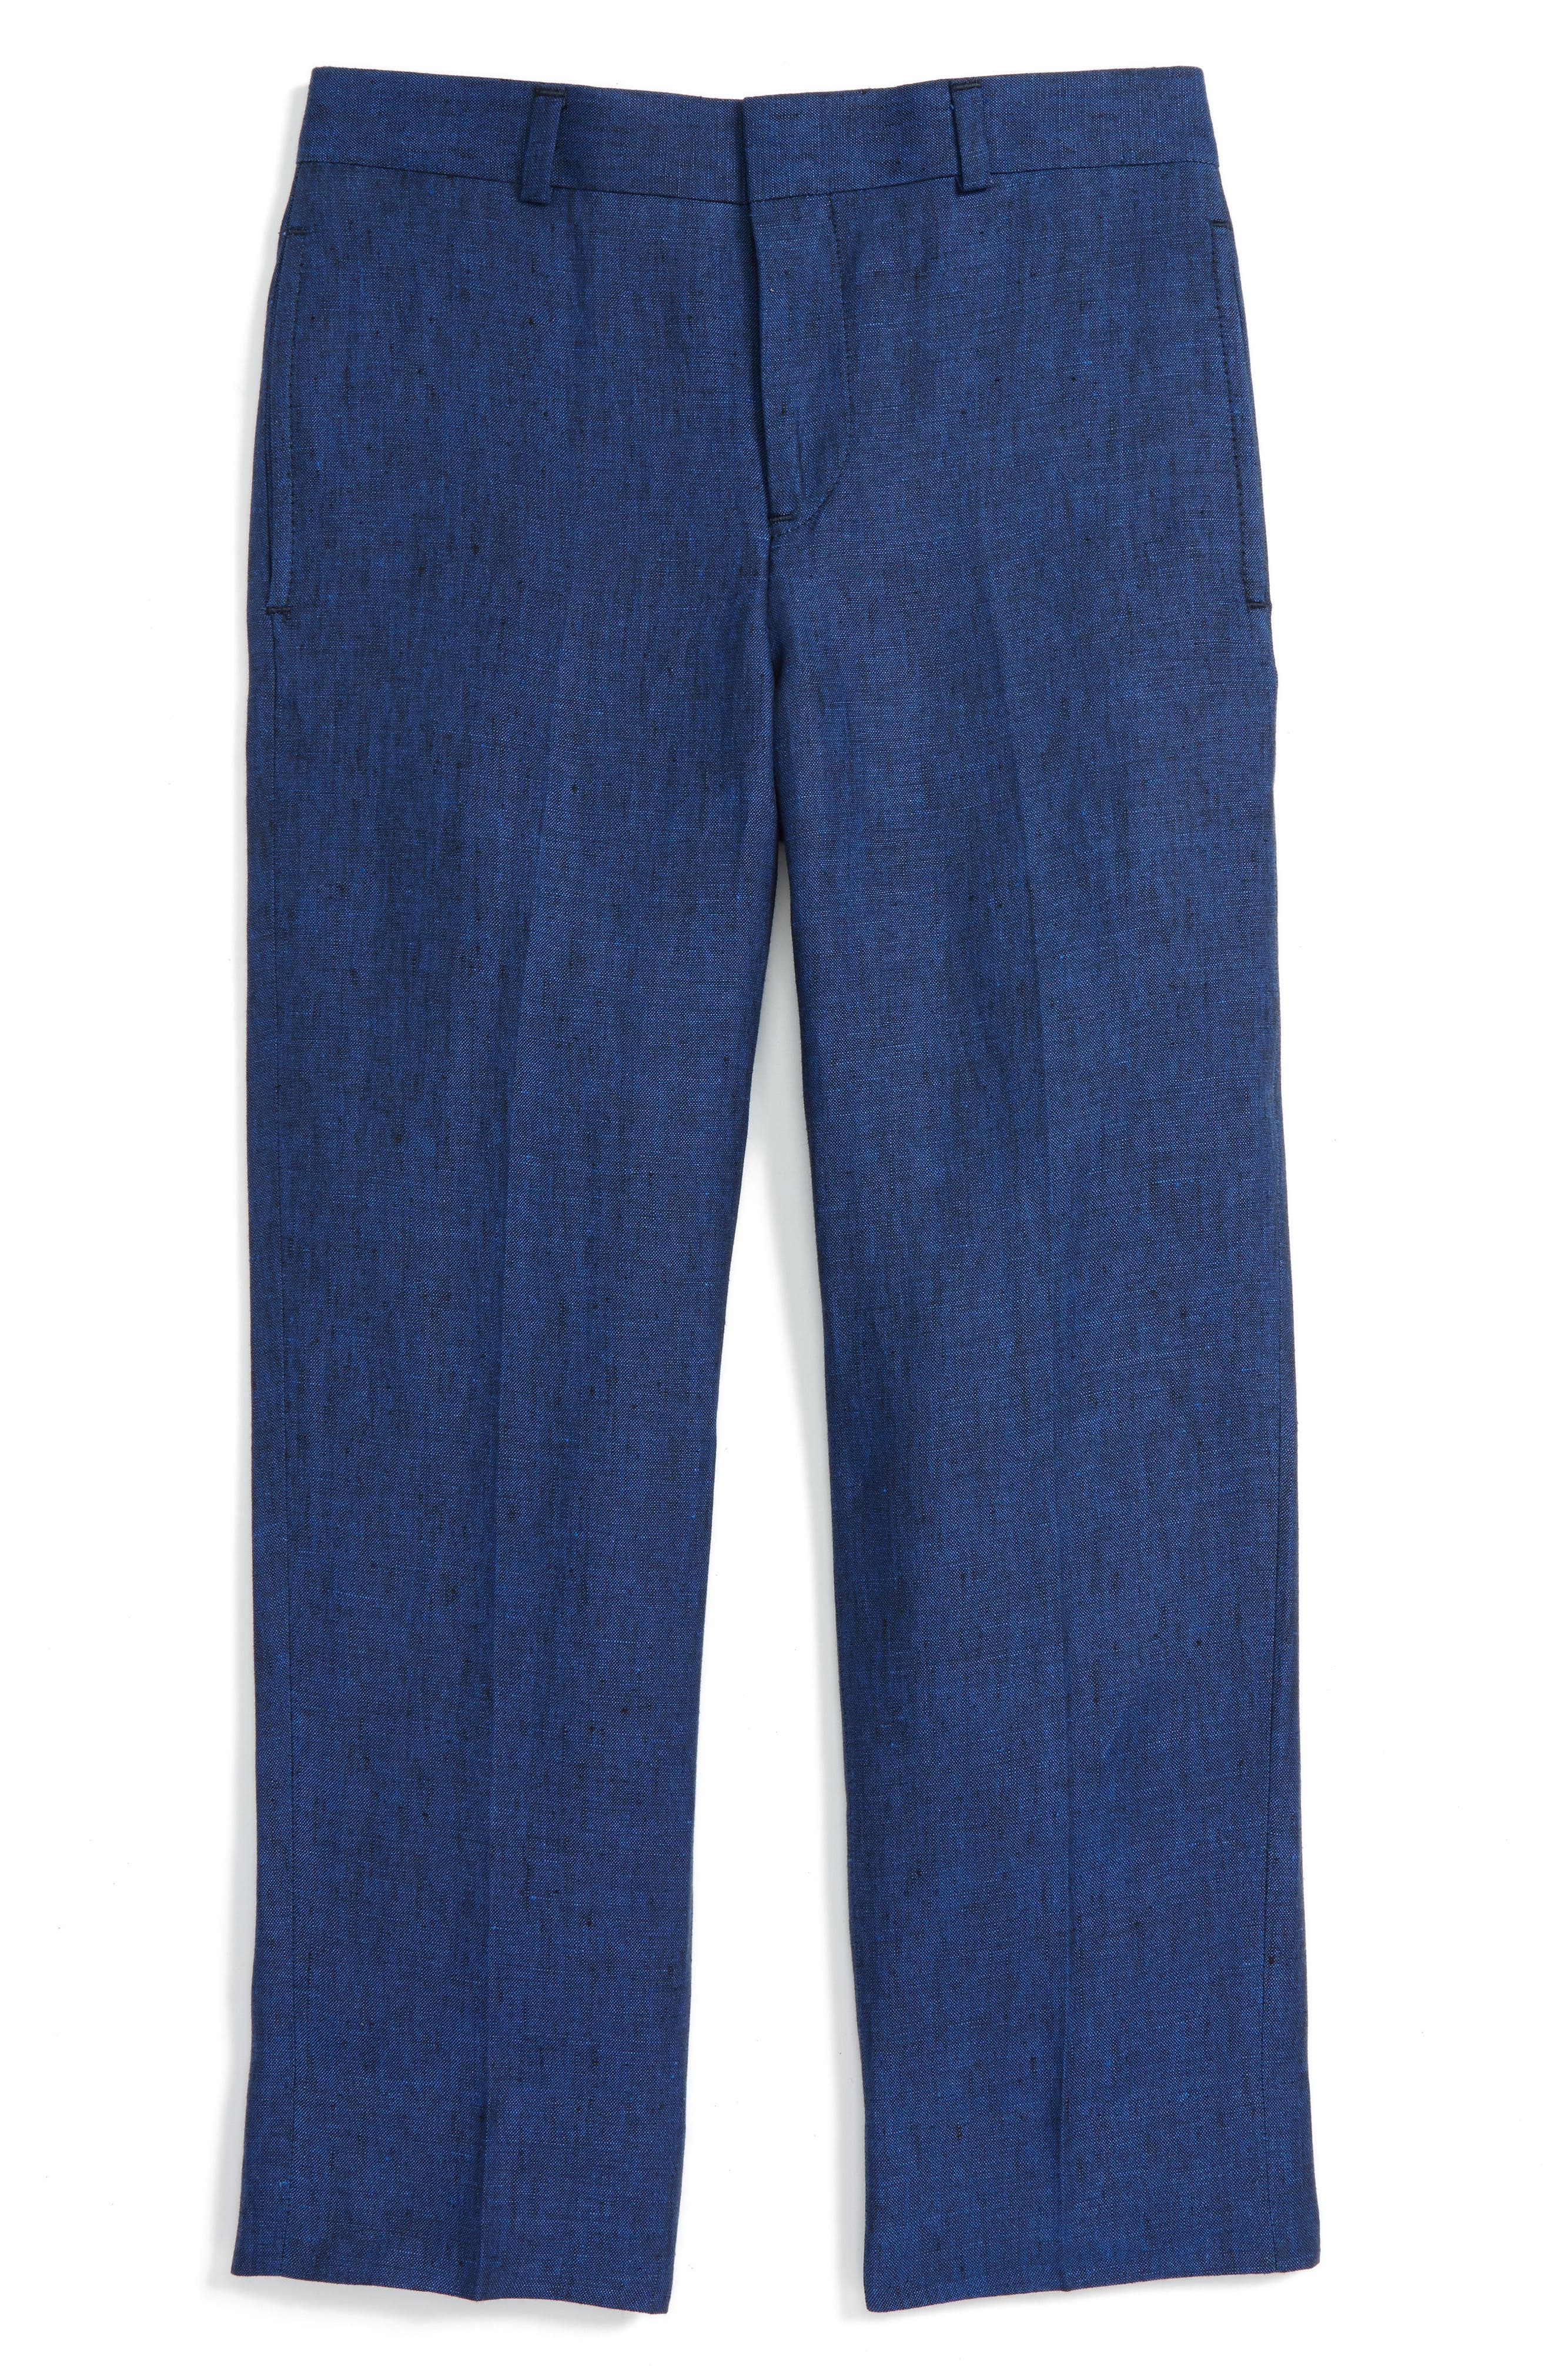 JB Jr Flat Front Linen Trousers (Big Boys)